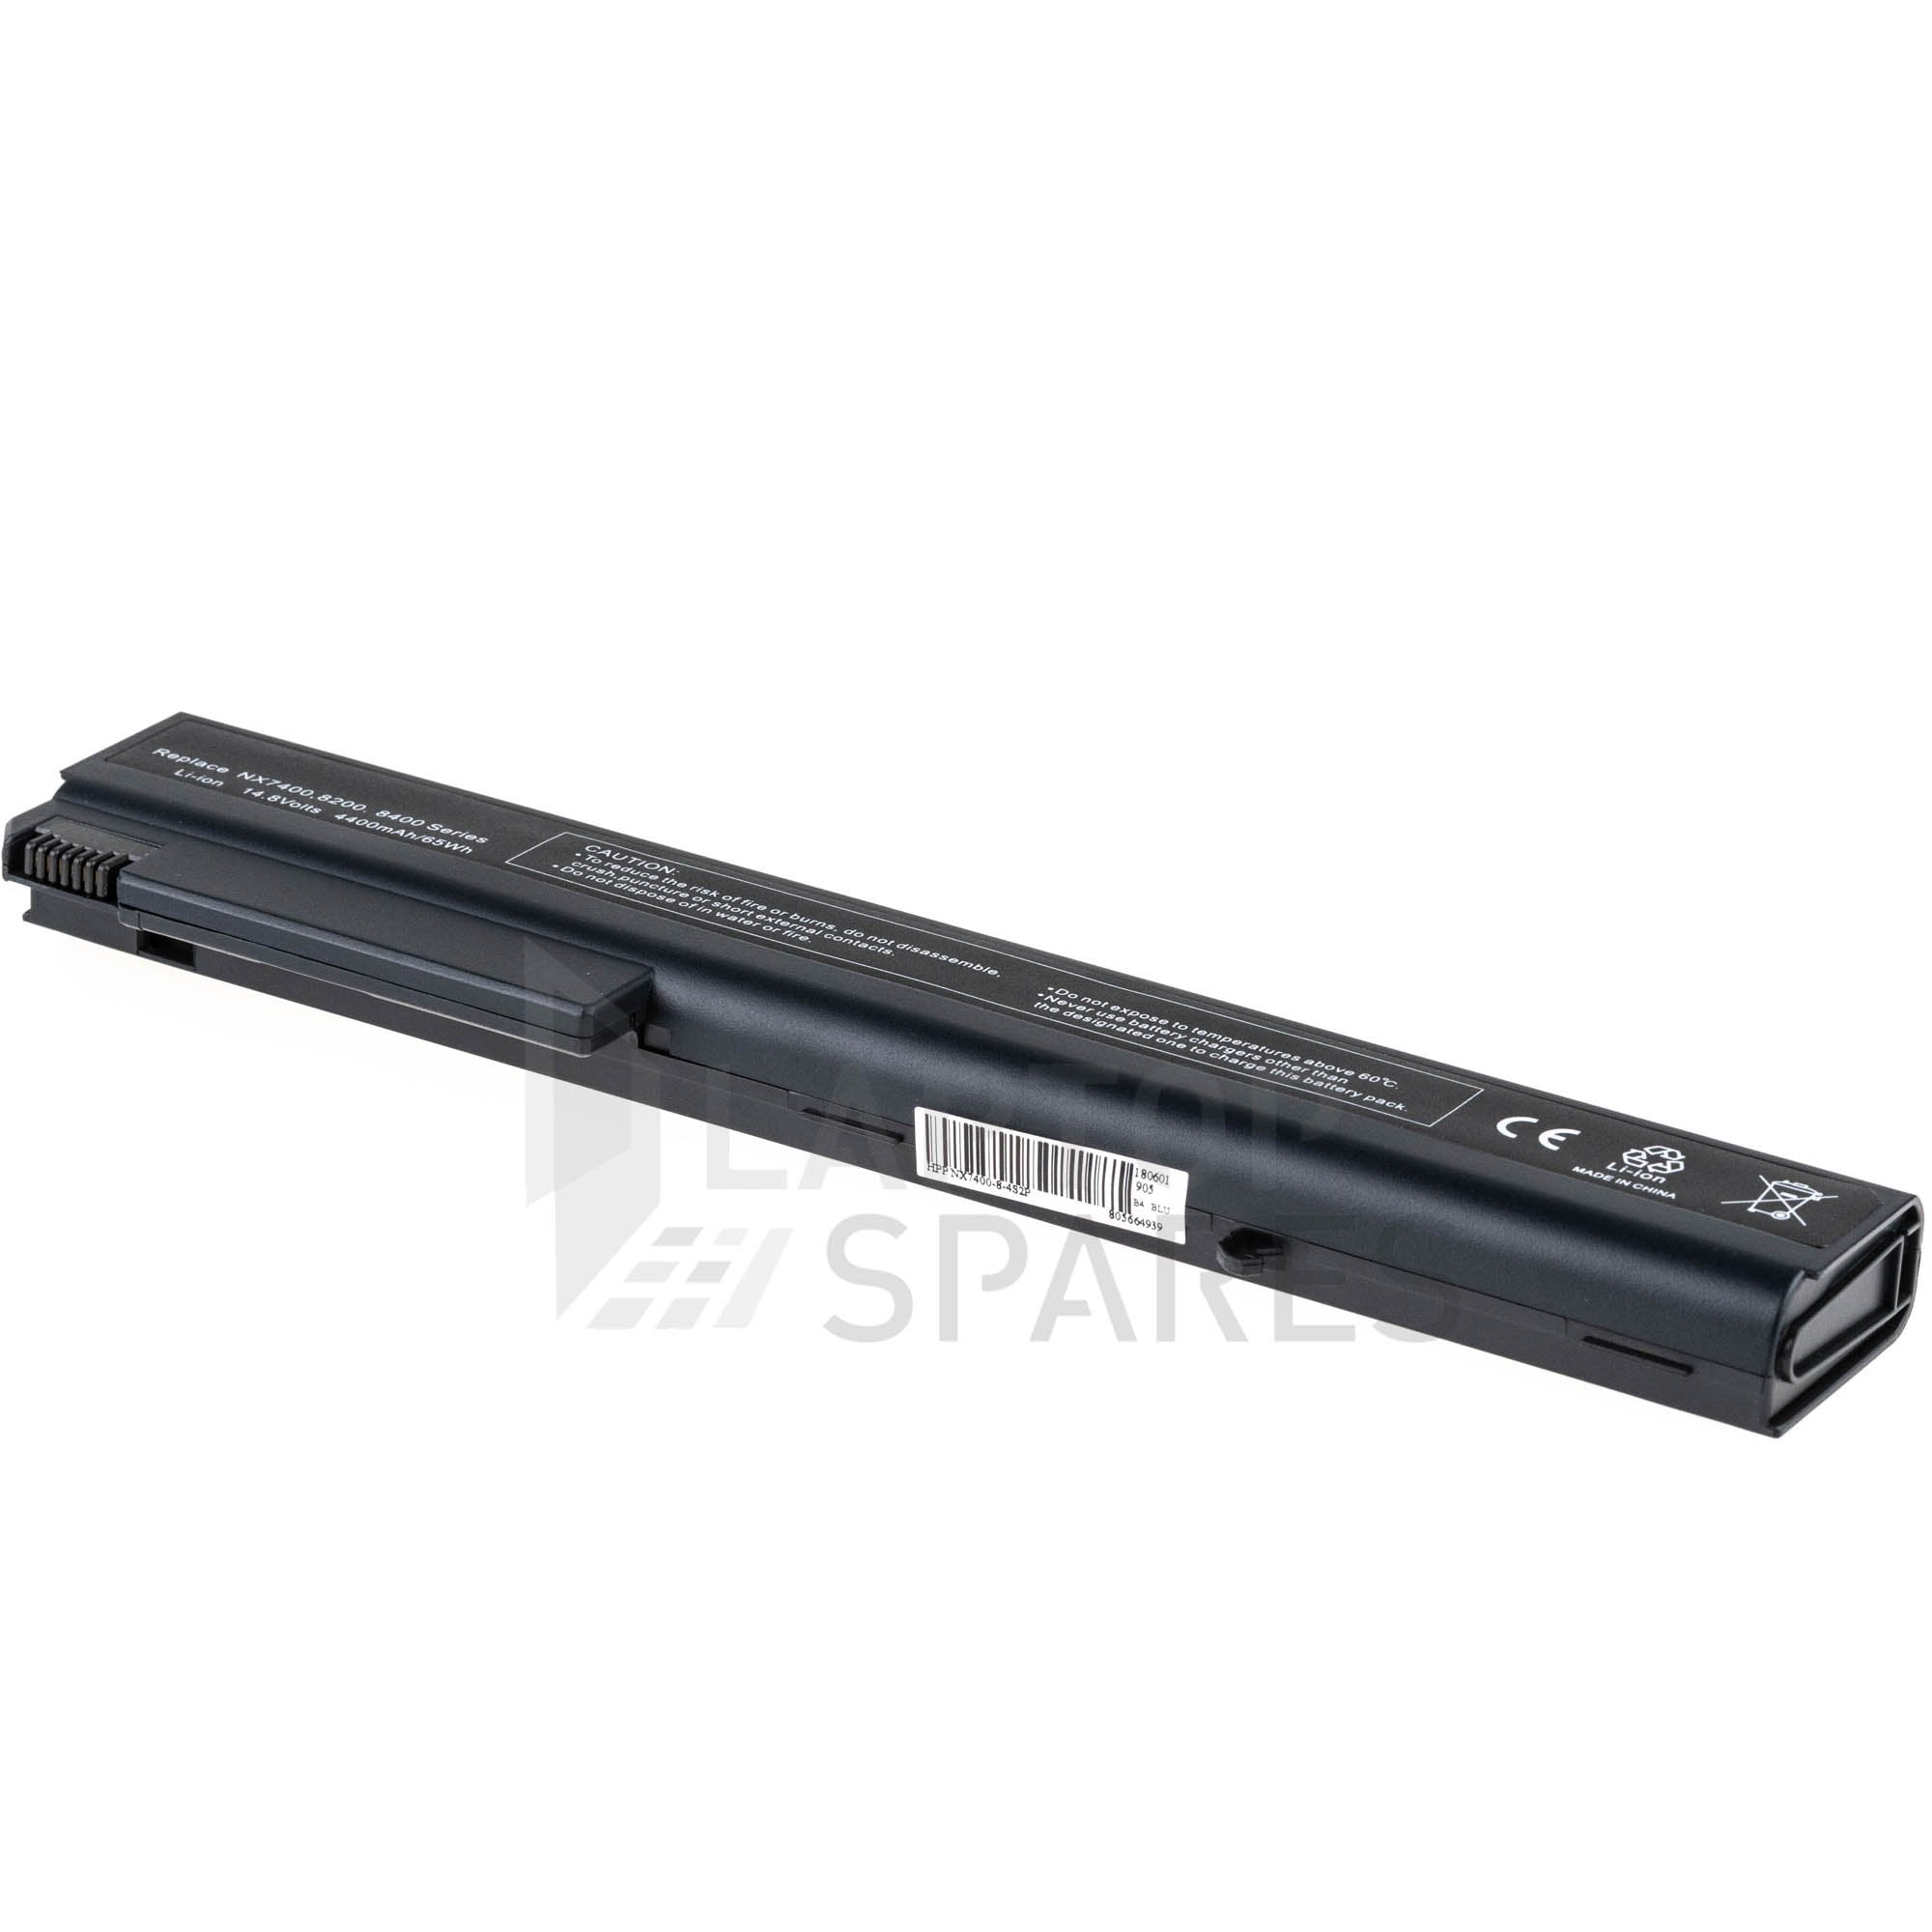 HP Business Notebook 7400 4400mAh 6 Cell Battery